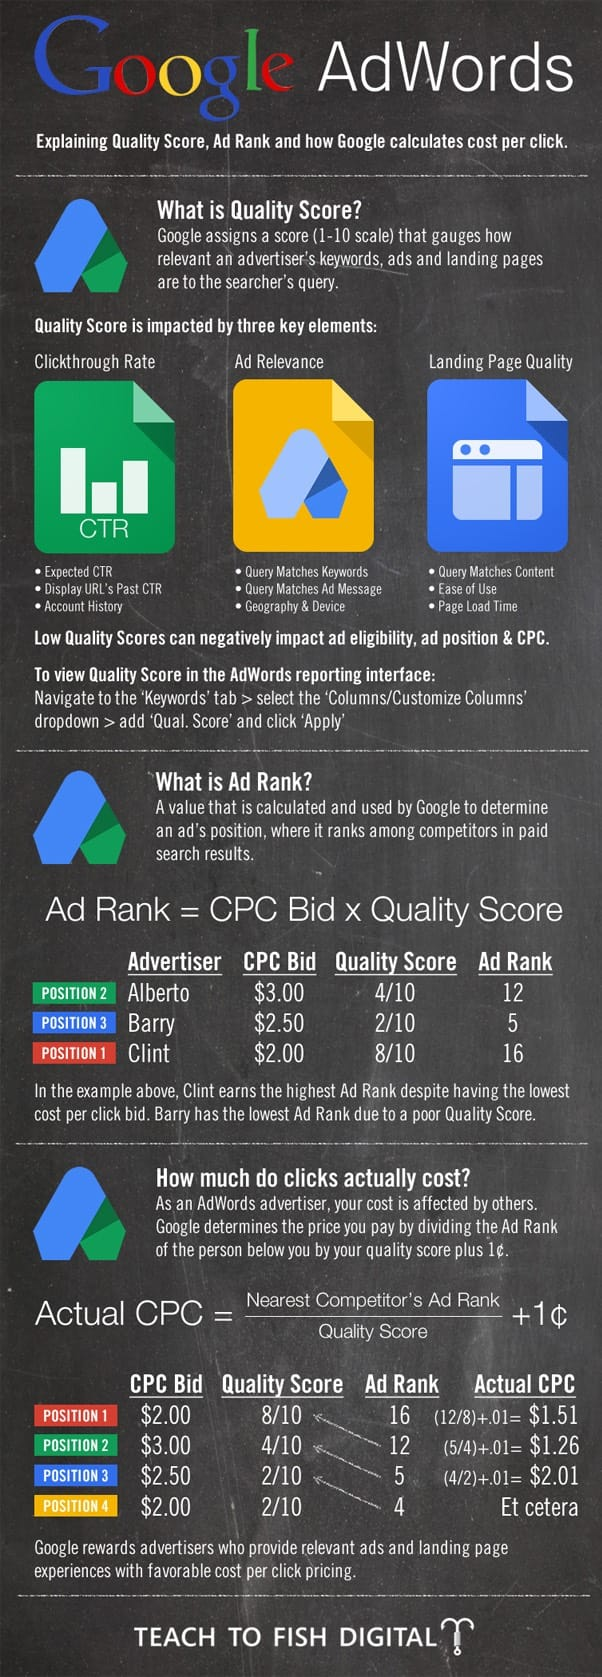 Adwords Infographic